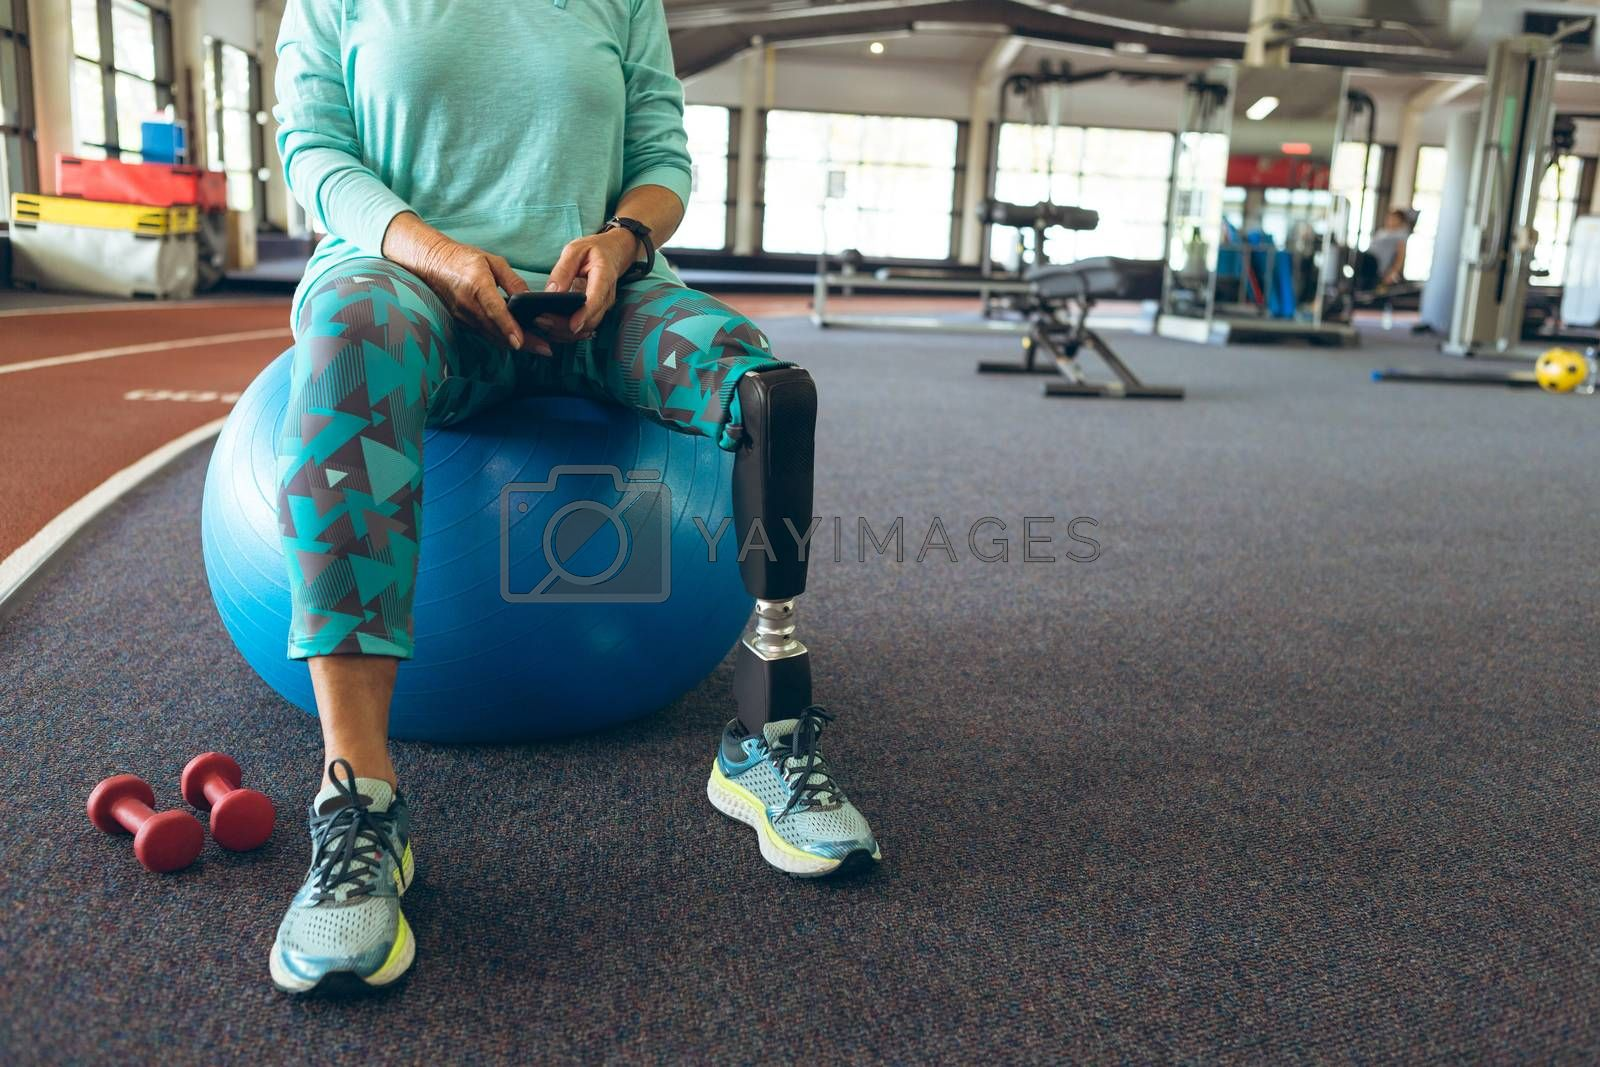 Disabled active senior woman using mobile phone while sitting on exercise ball in fitness center by Wavebreakmedia